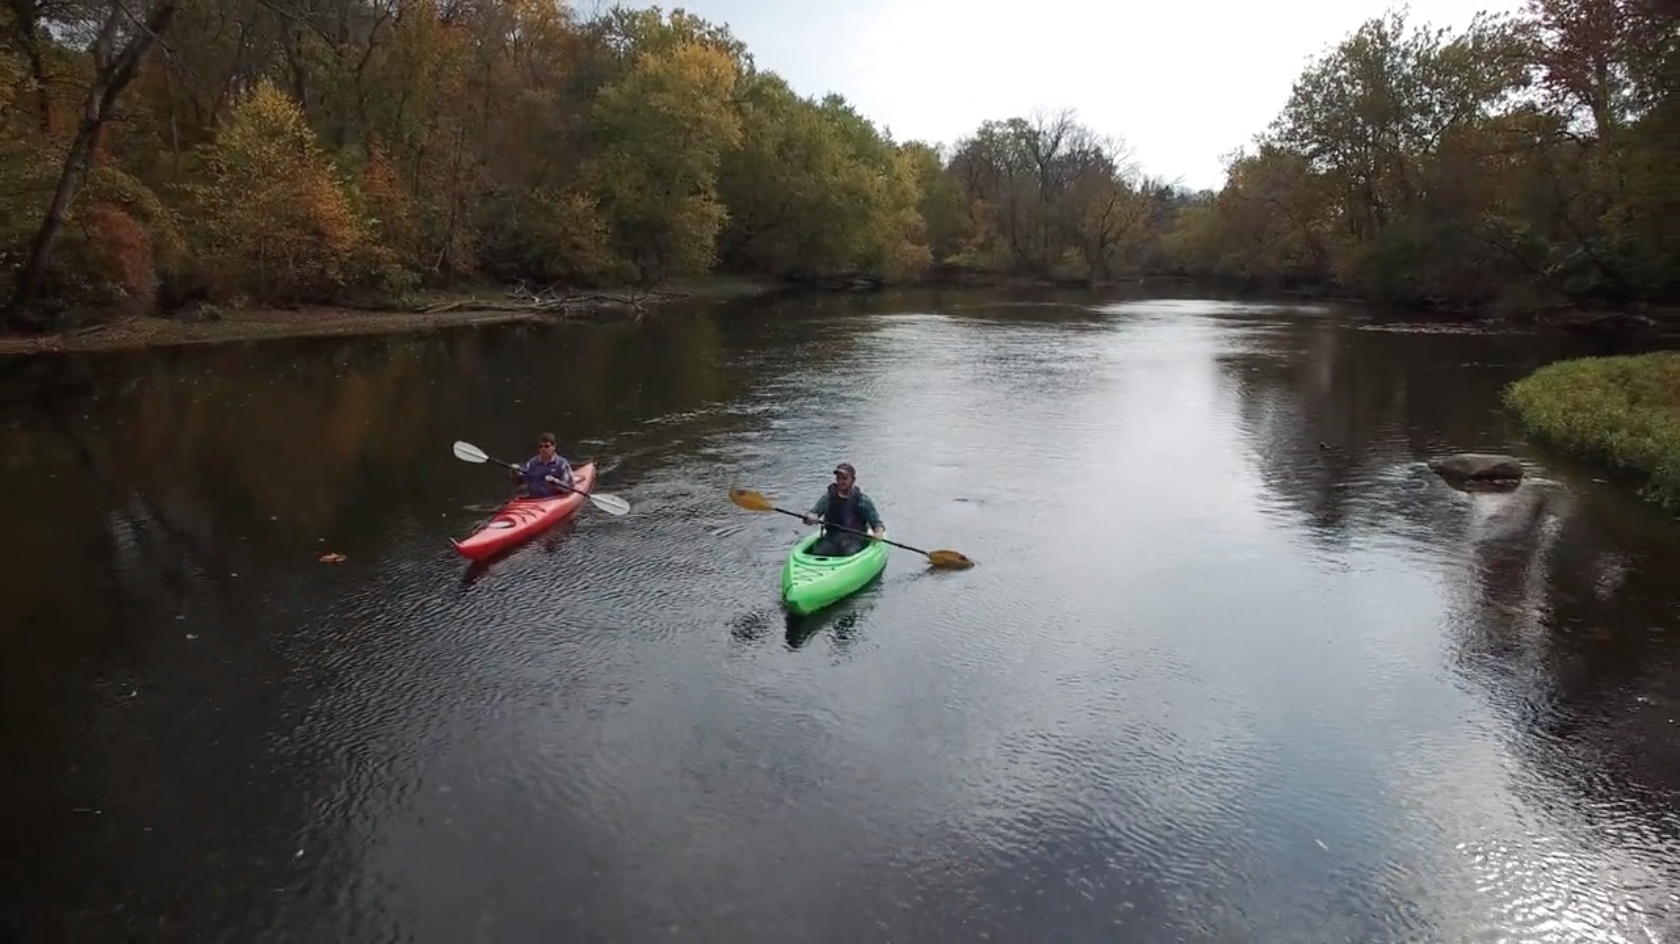 Indiana pulaski county francesville - Don T Tippe My Canoe Just Enjoy Floating The River The Jewel Of Pulaski County